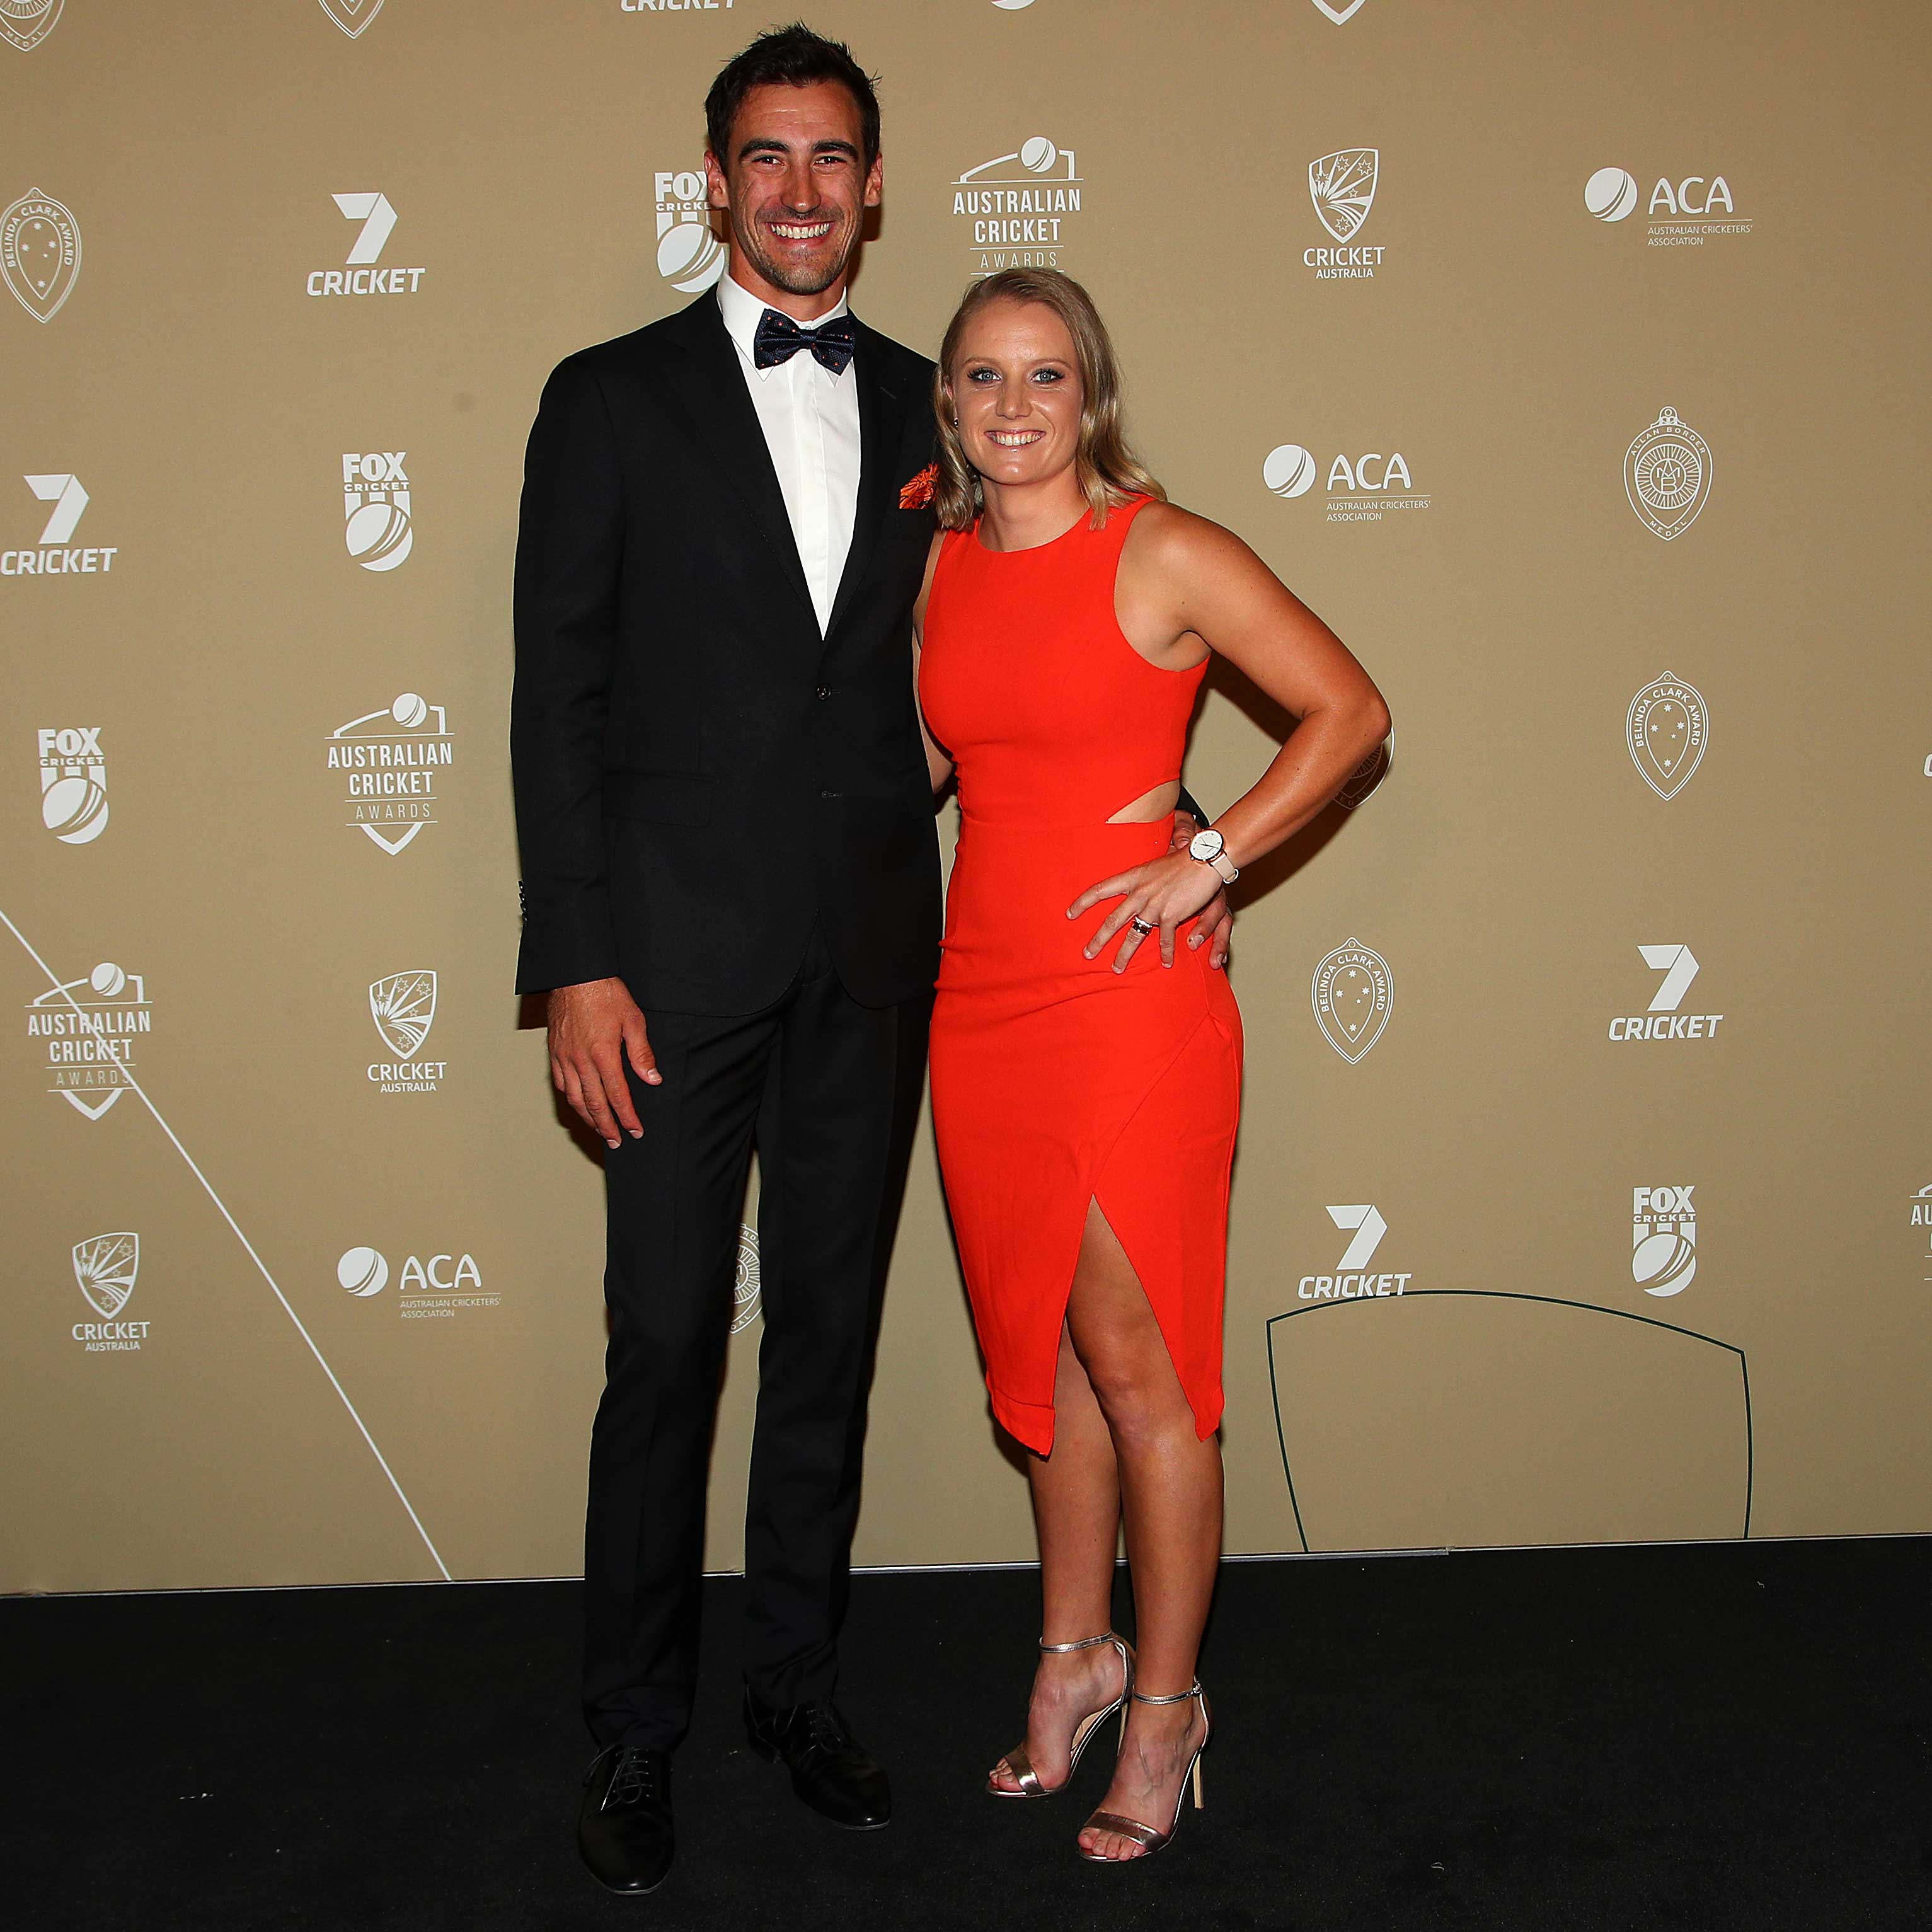 Mitchell Starc and Alyssa Healy // Getty